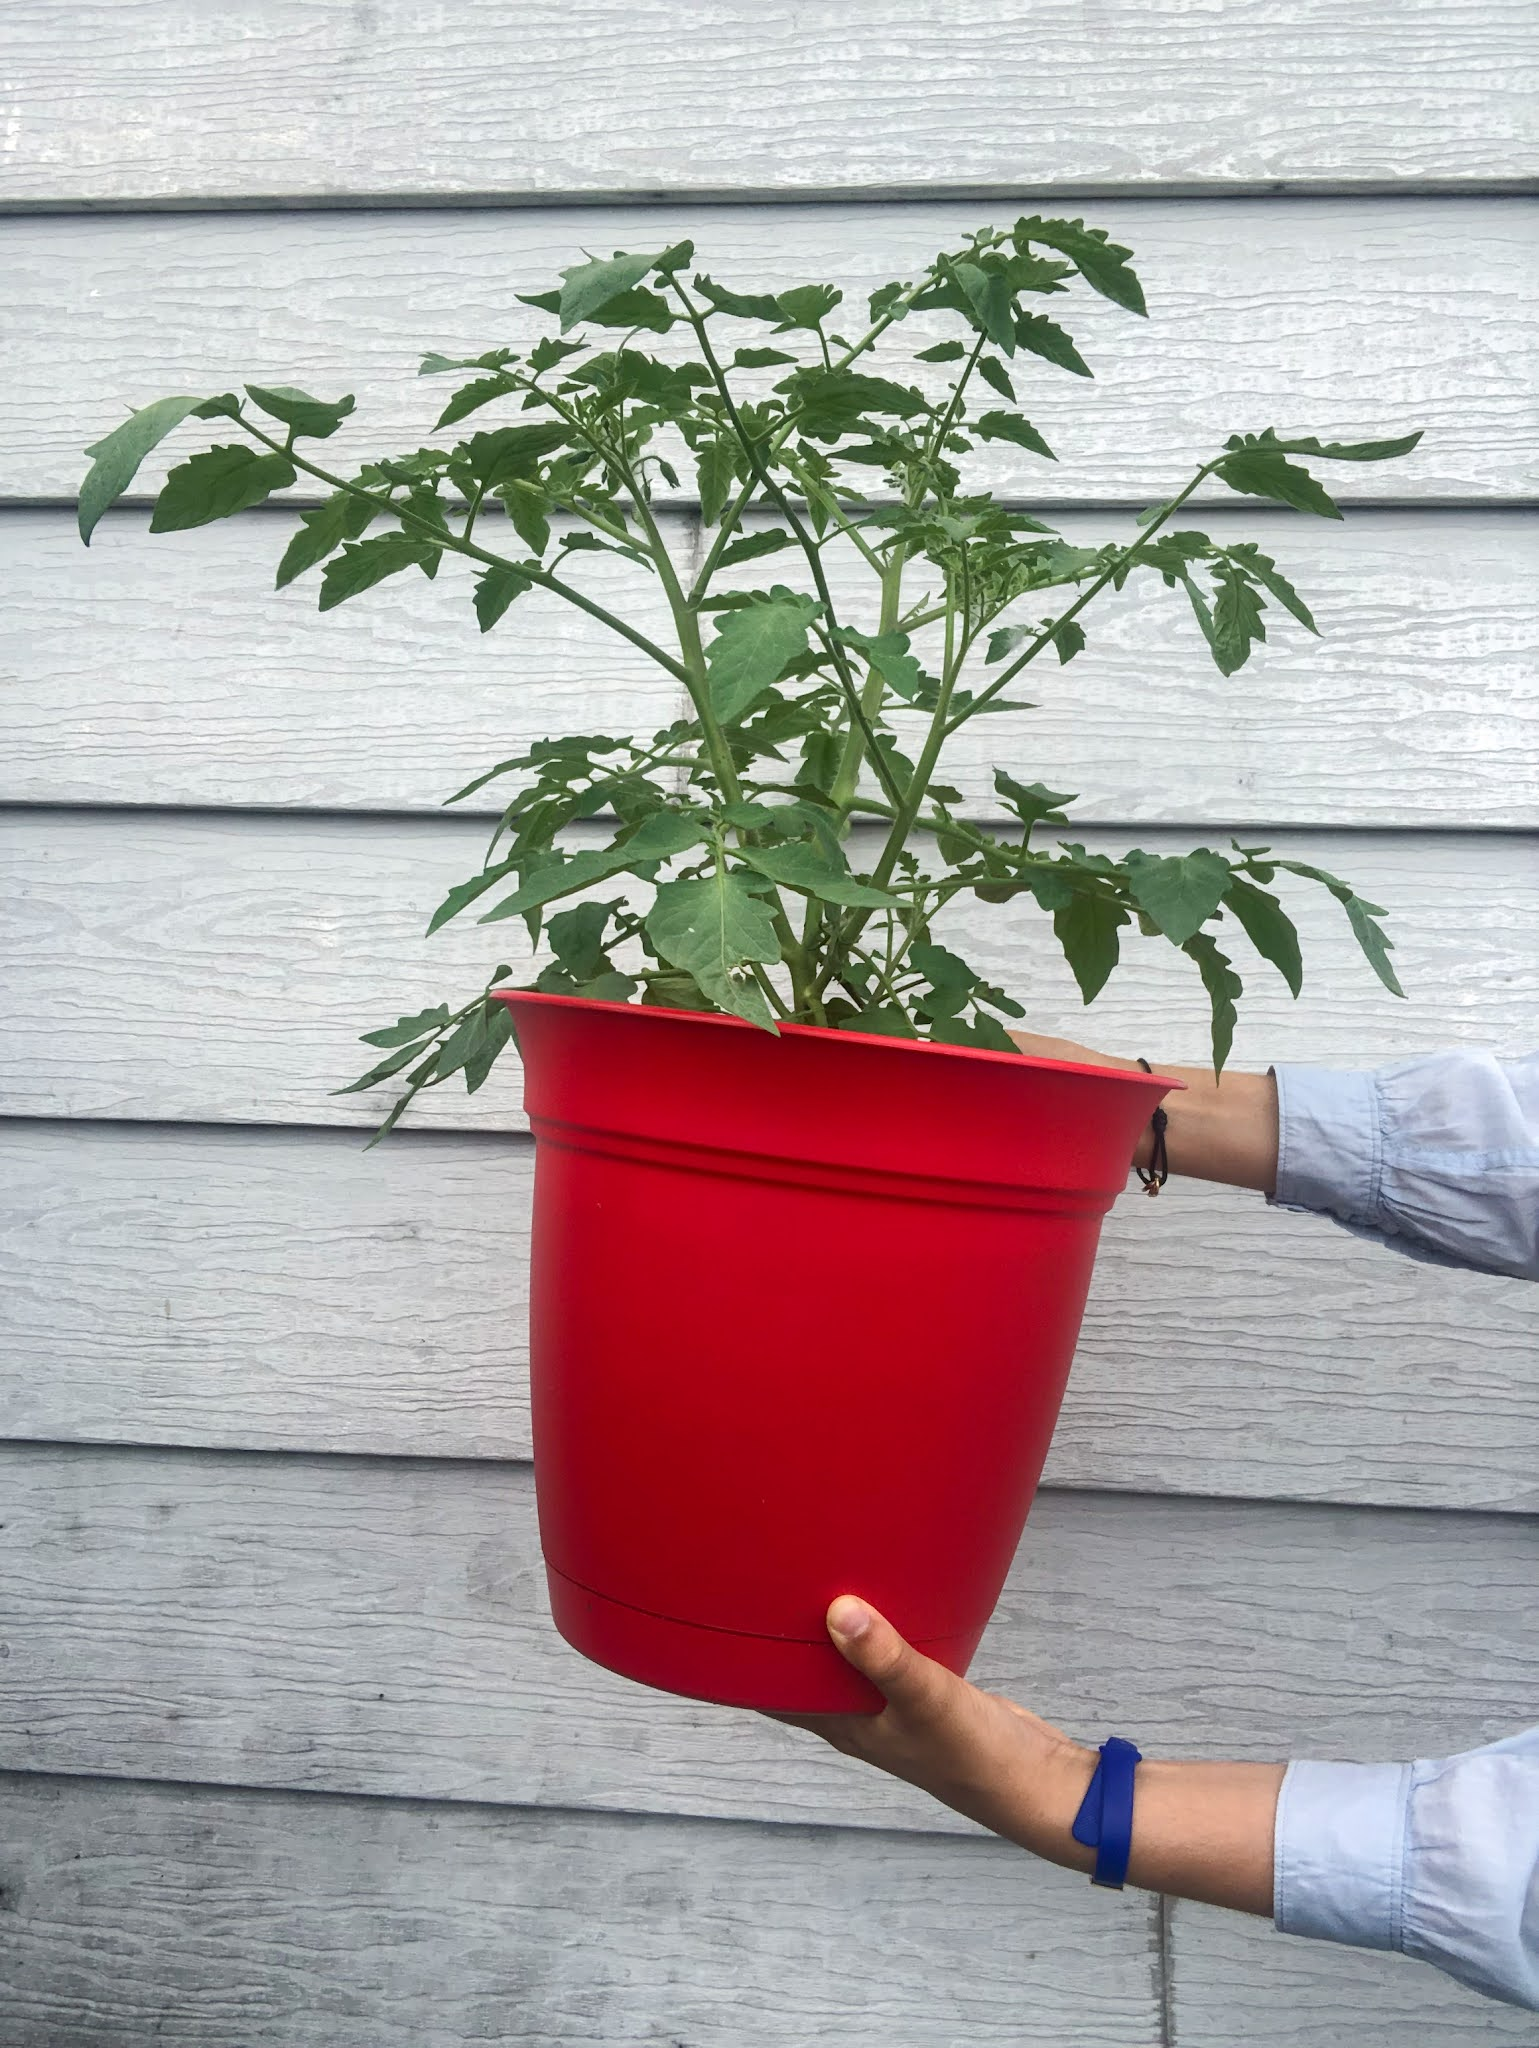 Me holding a red pot of tomato plant